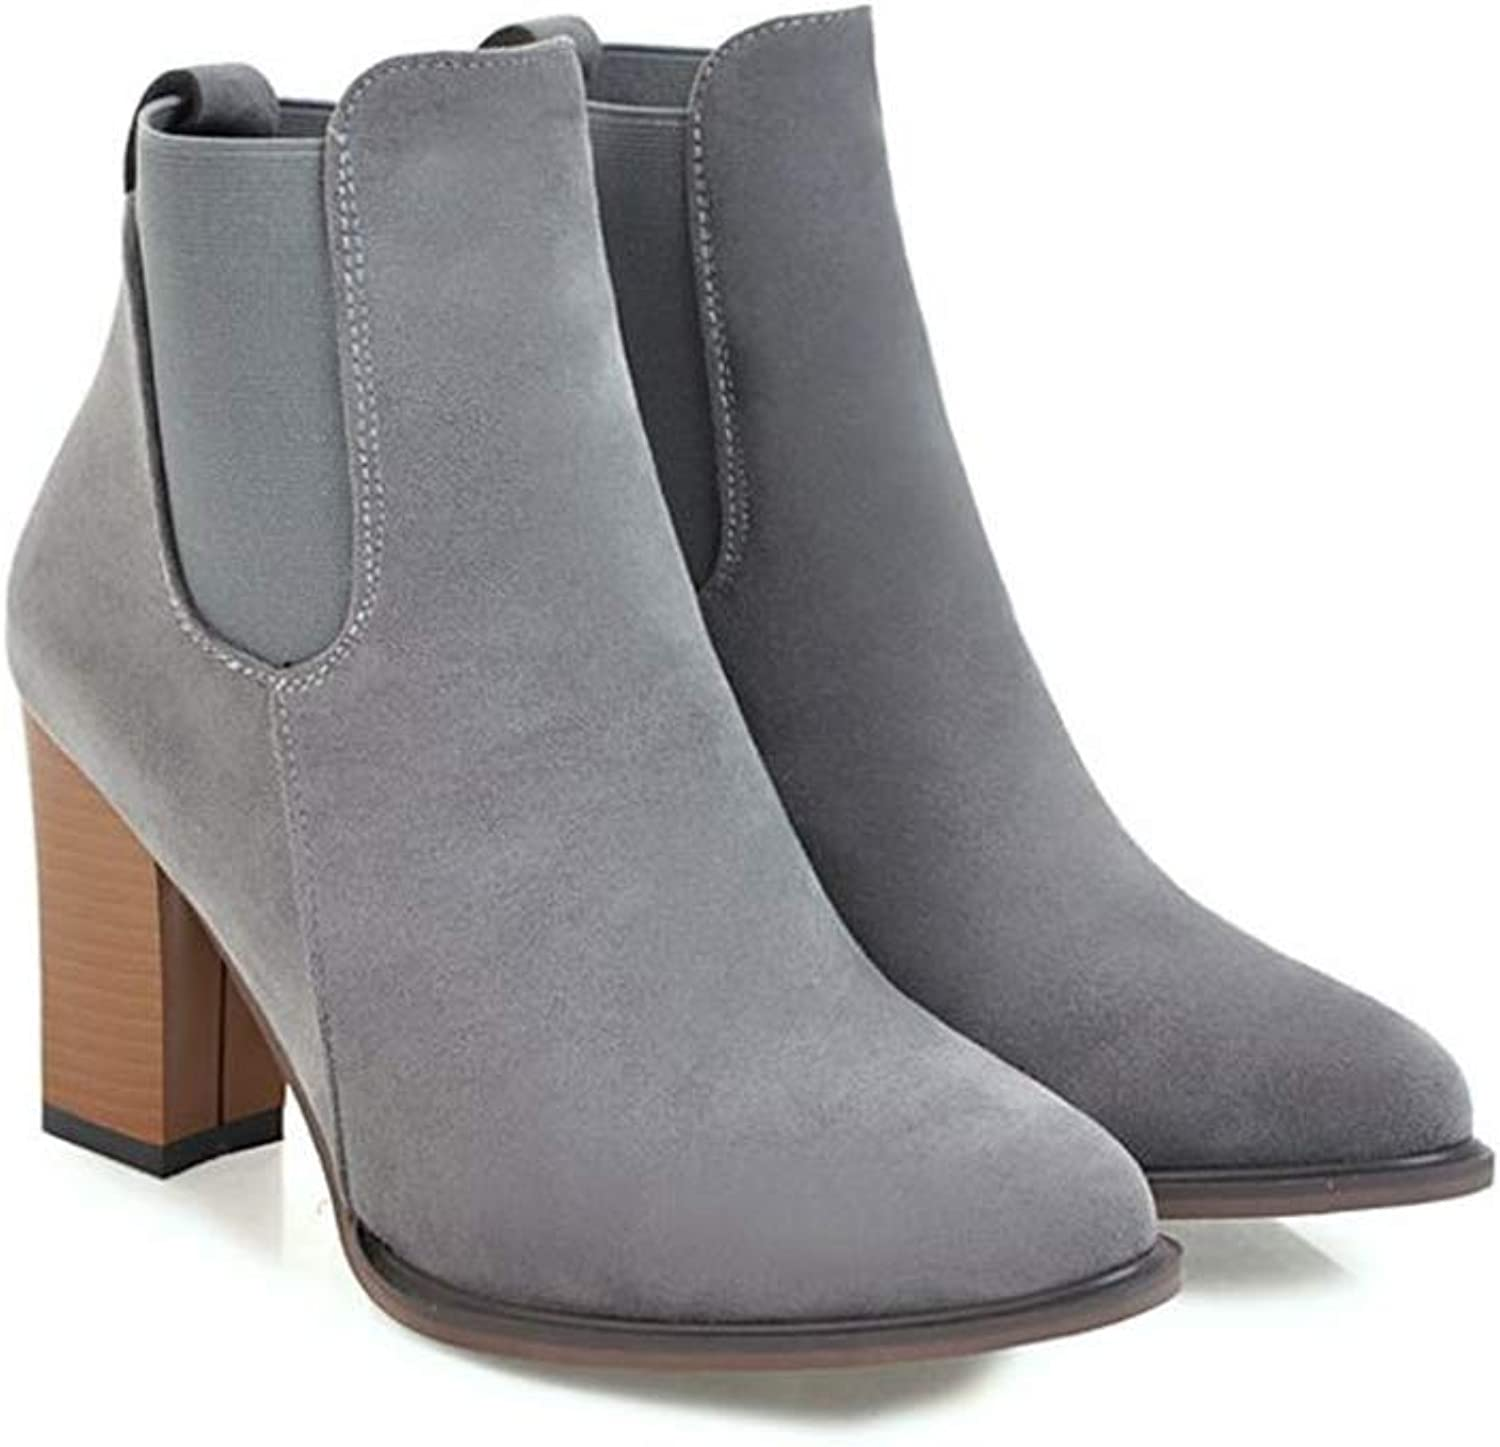 Set adil Women's Suede Chunky Heel Ankle Boot